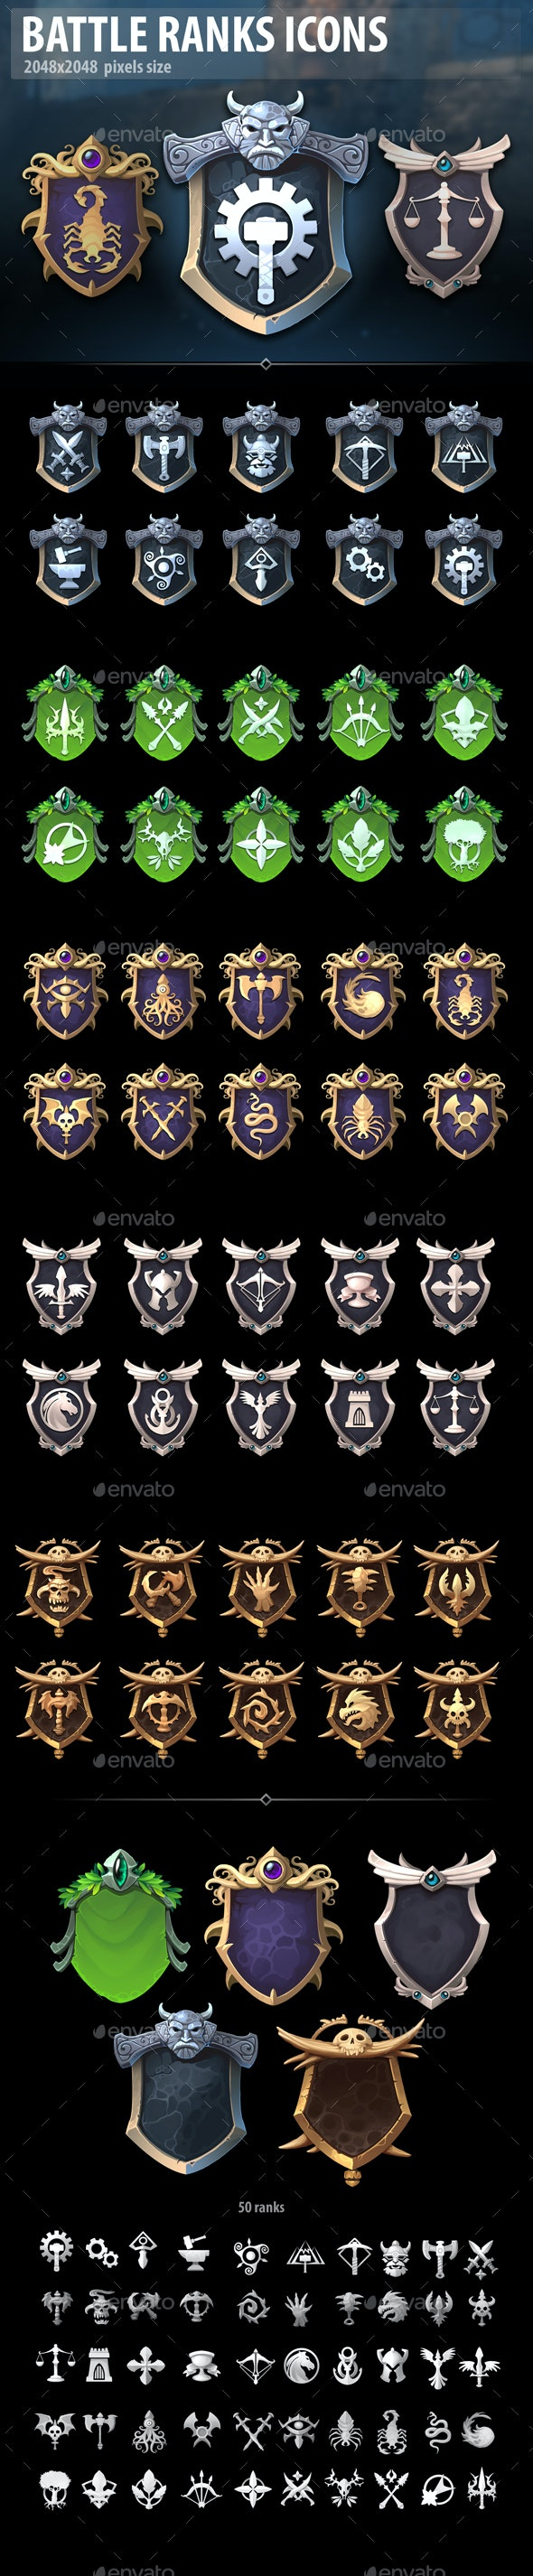 Battle Ranks Icons - Miscellaneous Game Assets